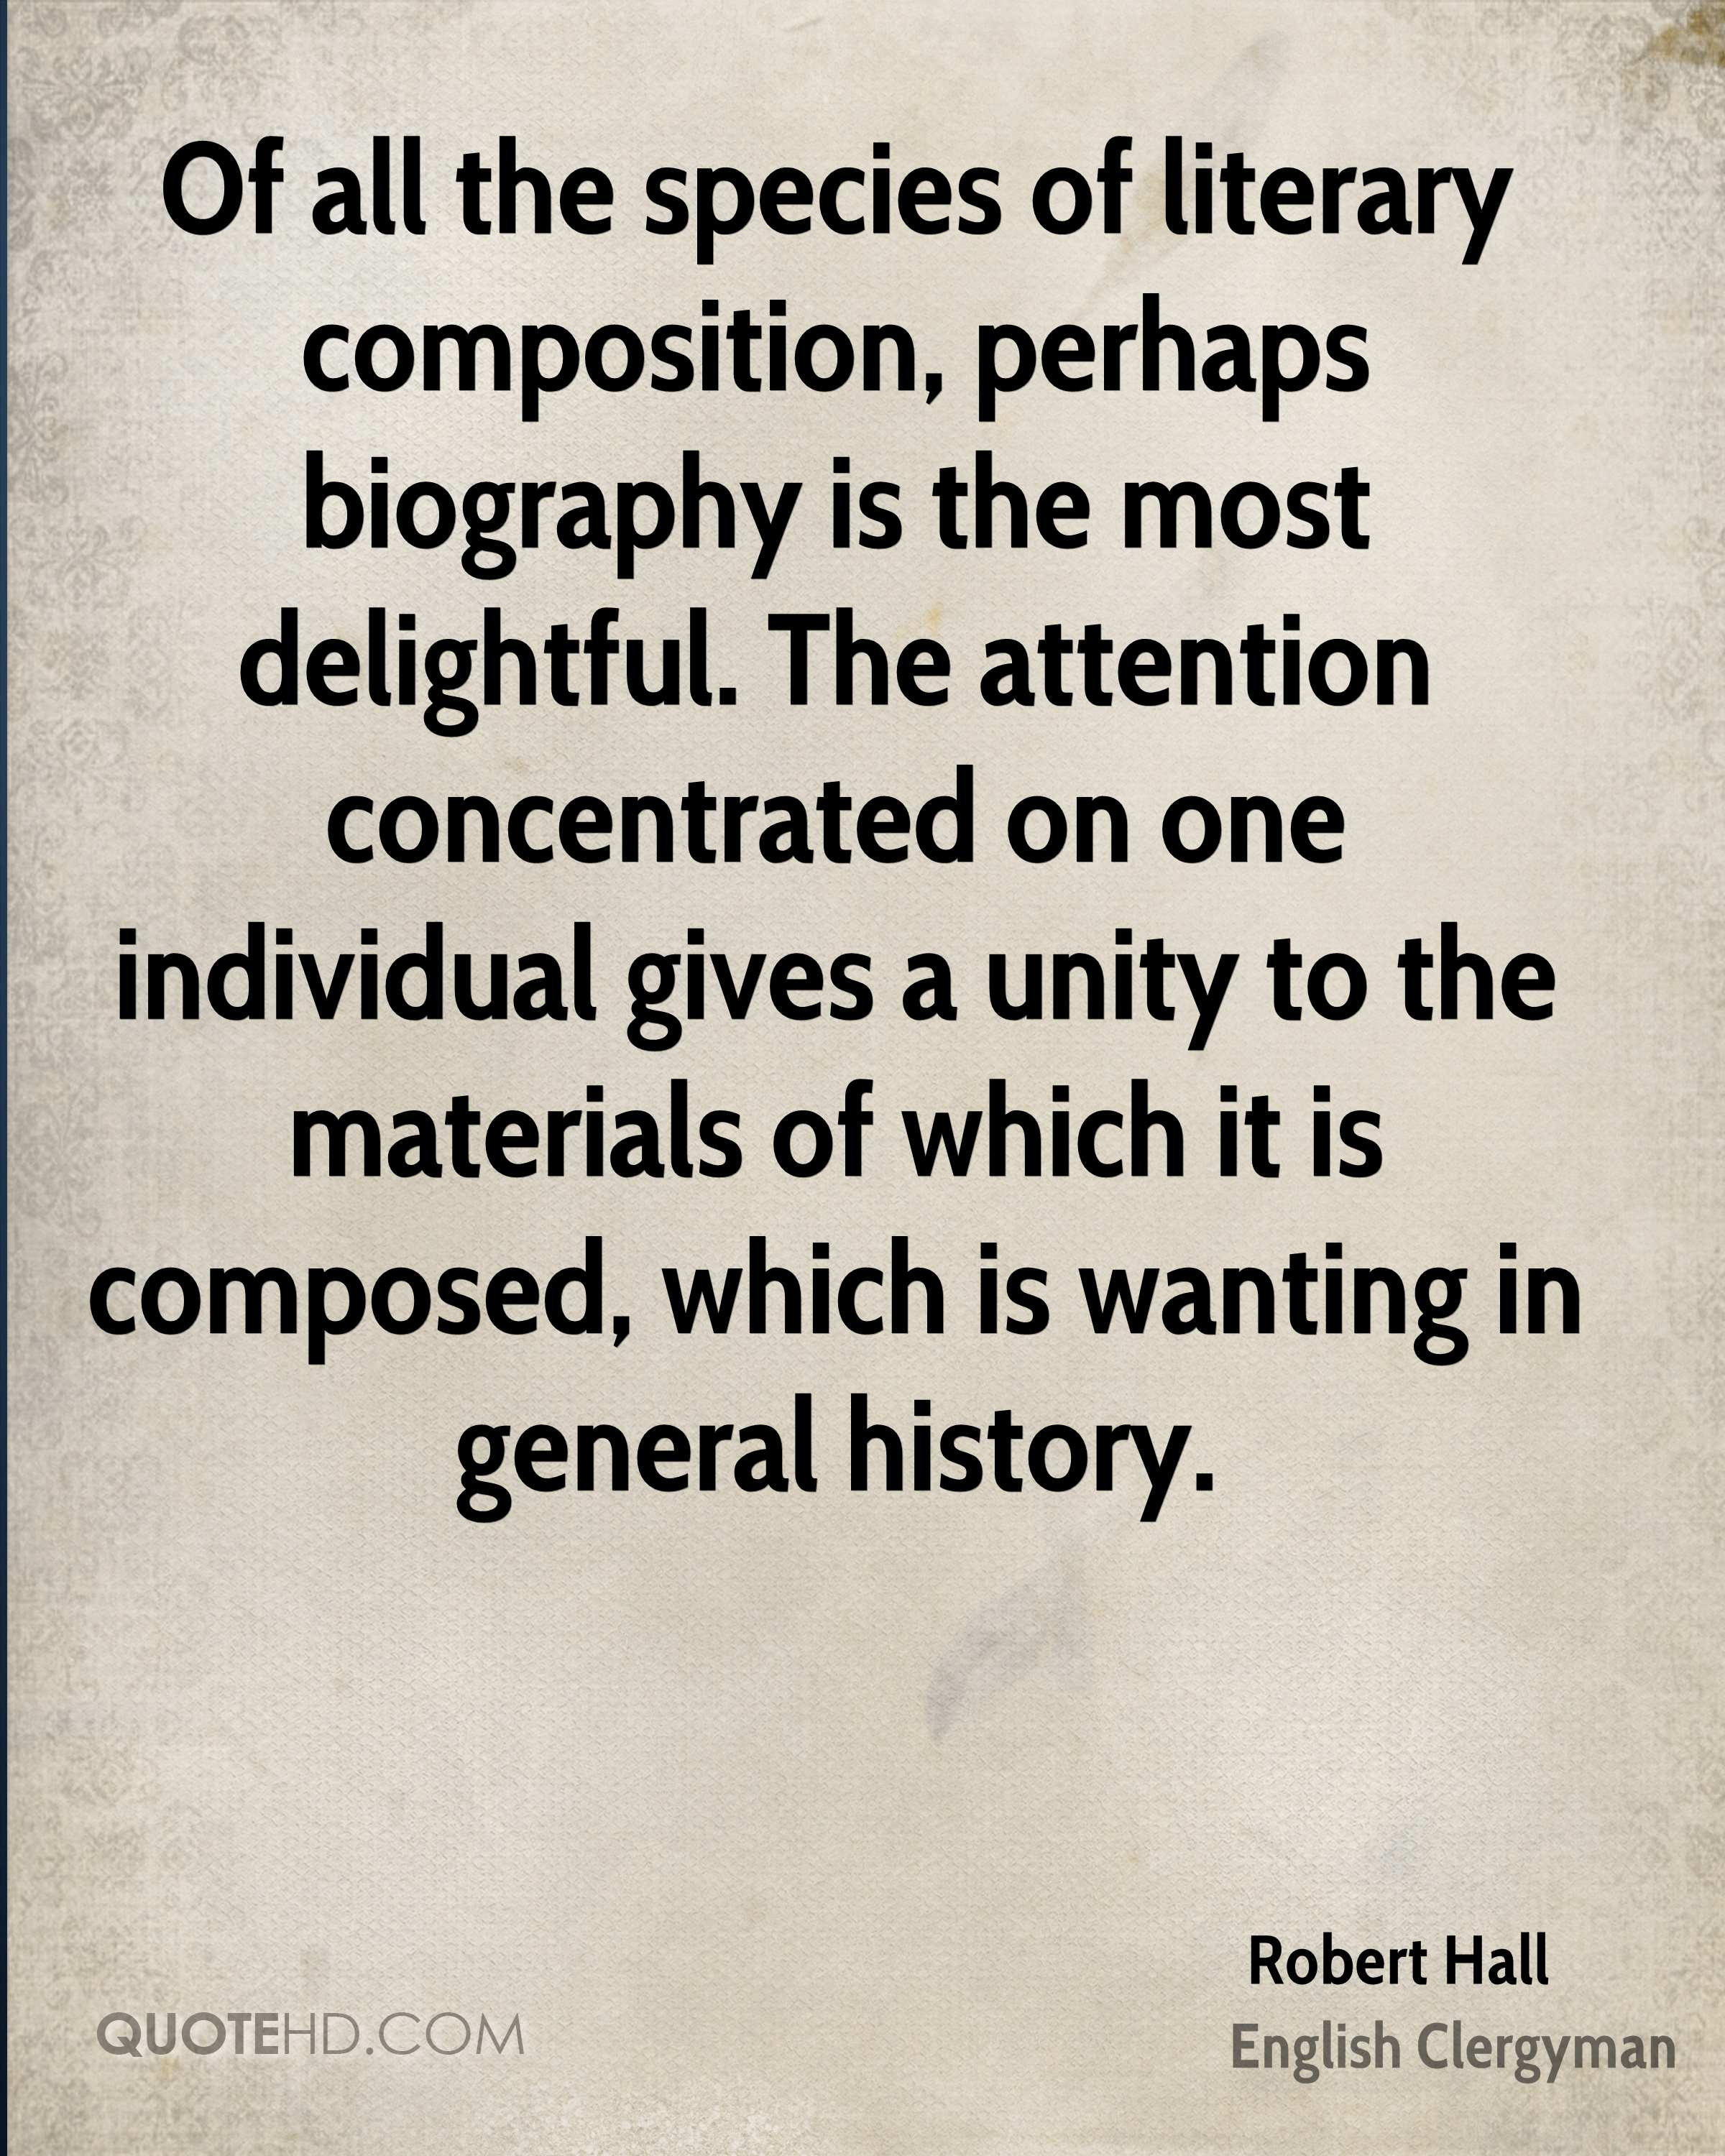 Of all the species of literary composition, perhaps biography is the most delightful. The attention concentrated on one individual gives a unity to the materials of which it is composed, which is wanting in general history.